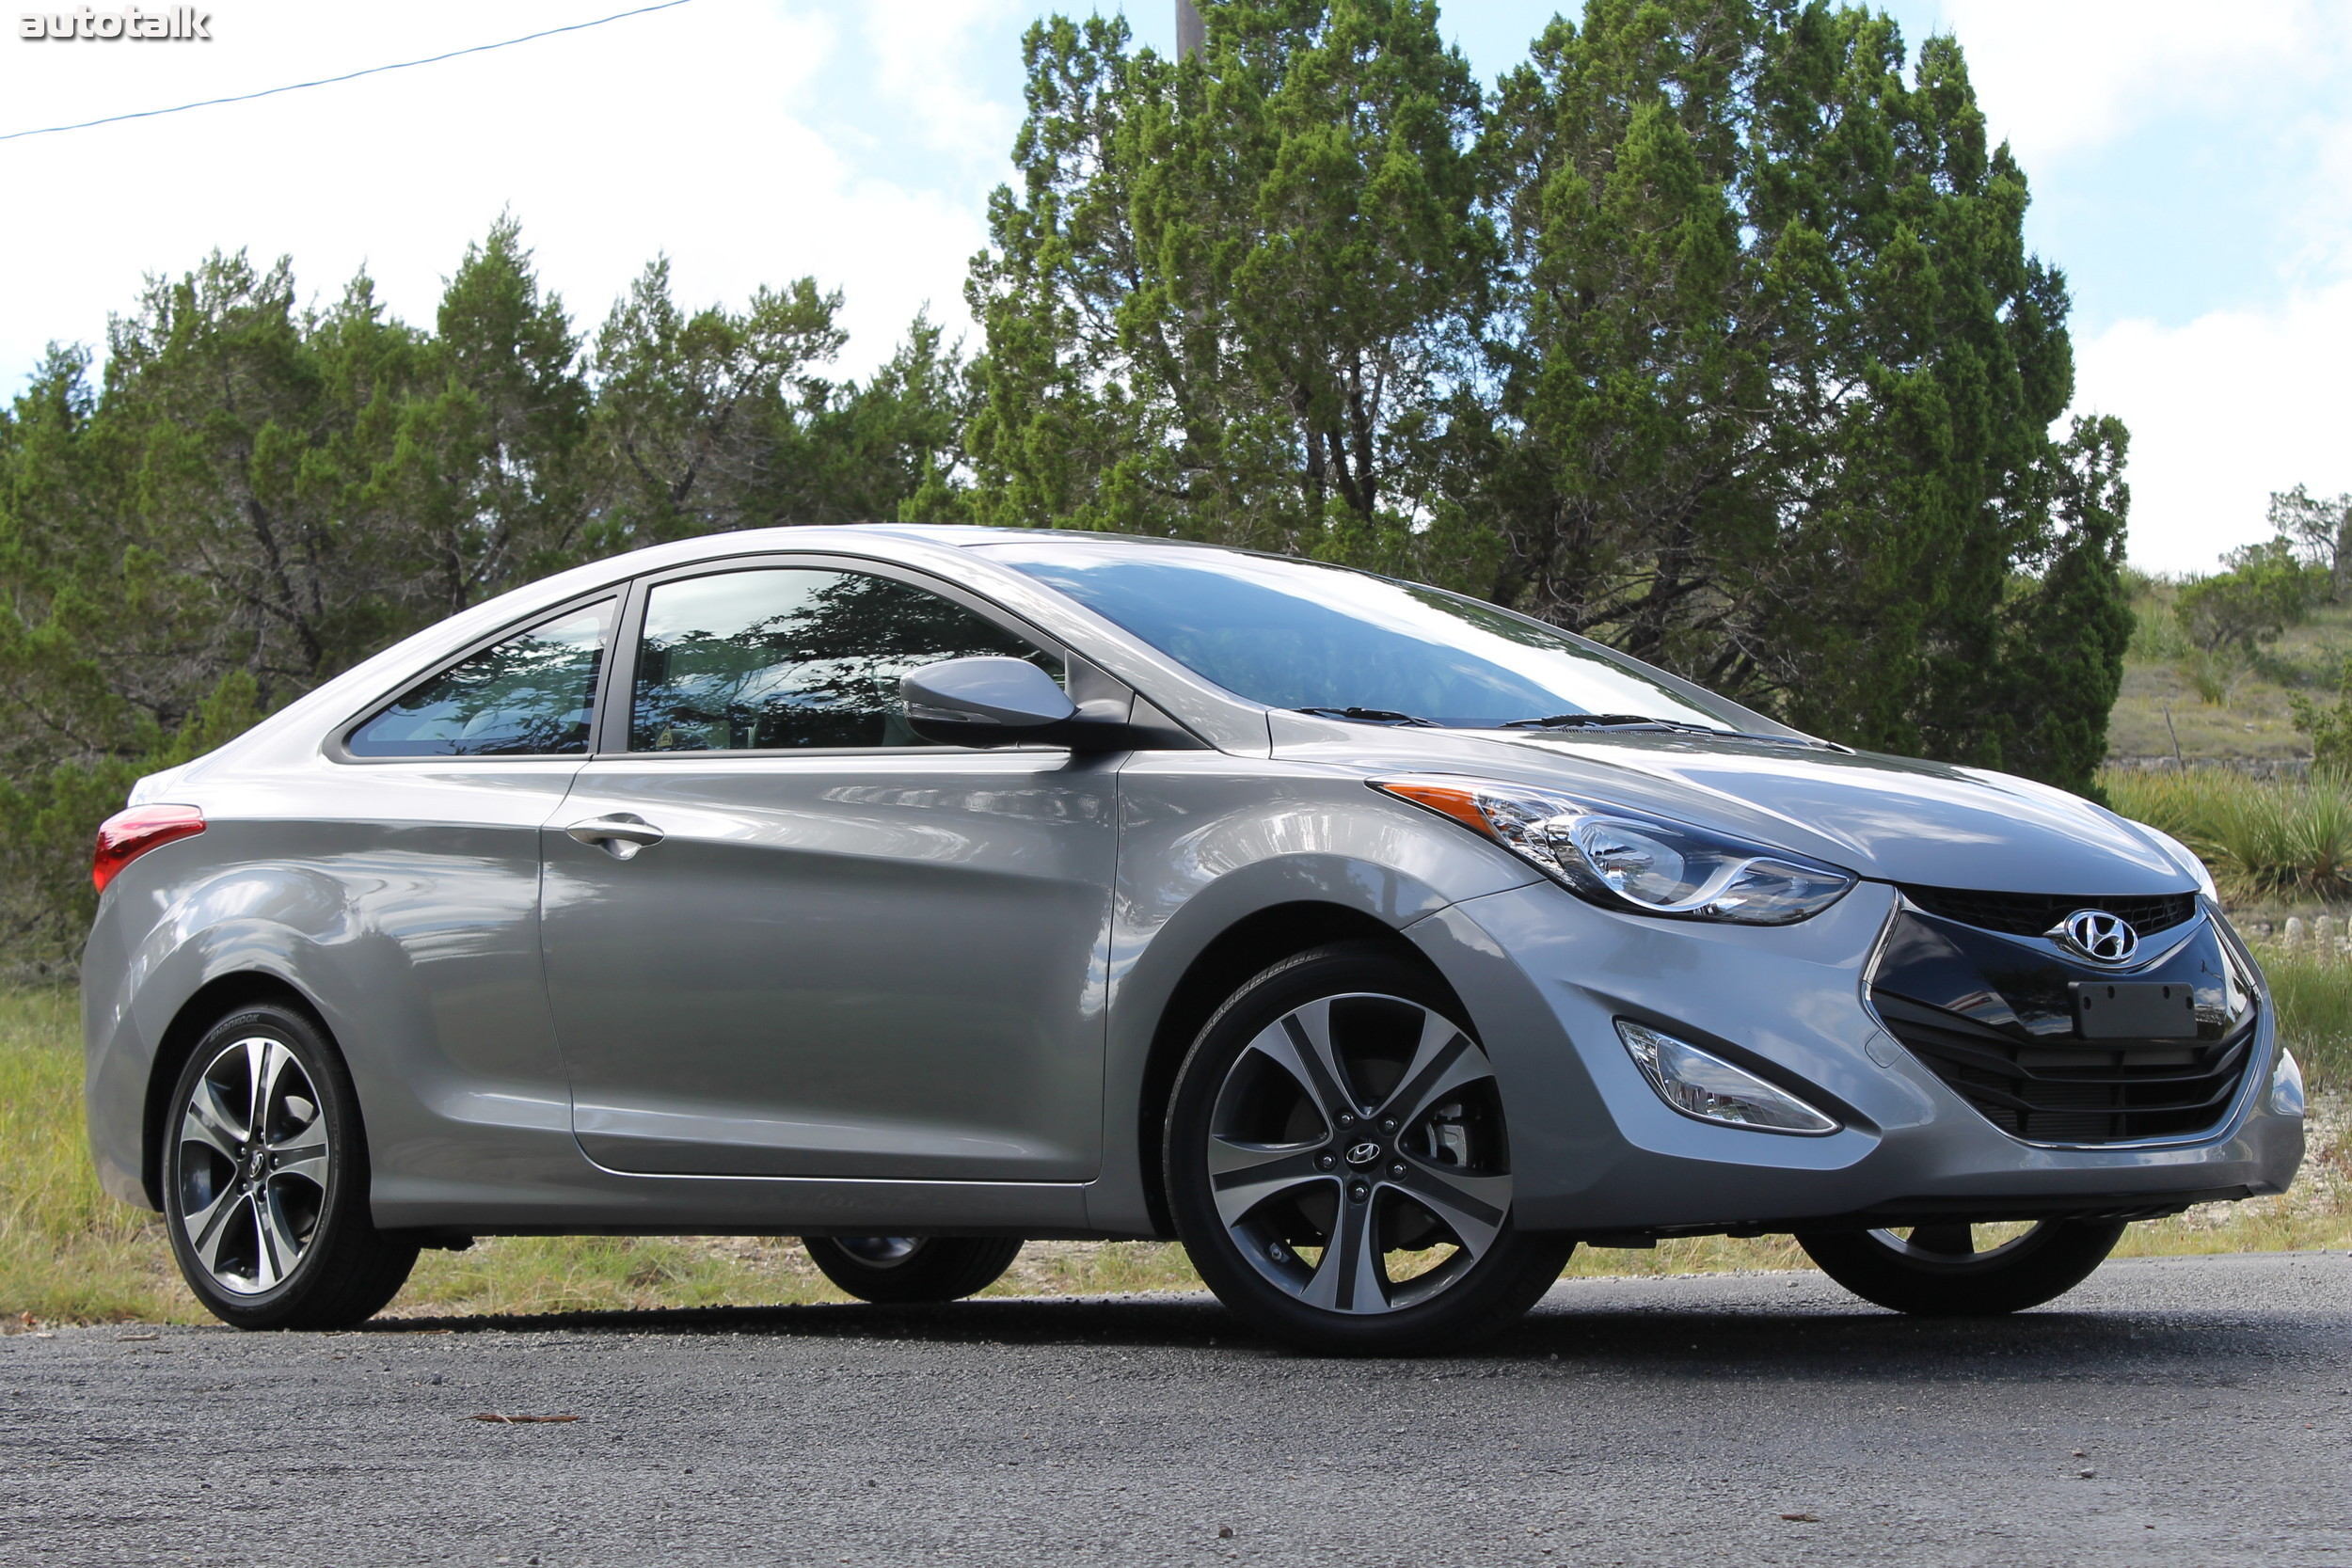 2013 hyundai elantra coupe first drive autotalk. Black Bedroom Furniture Sets. Home Design Ideas